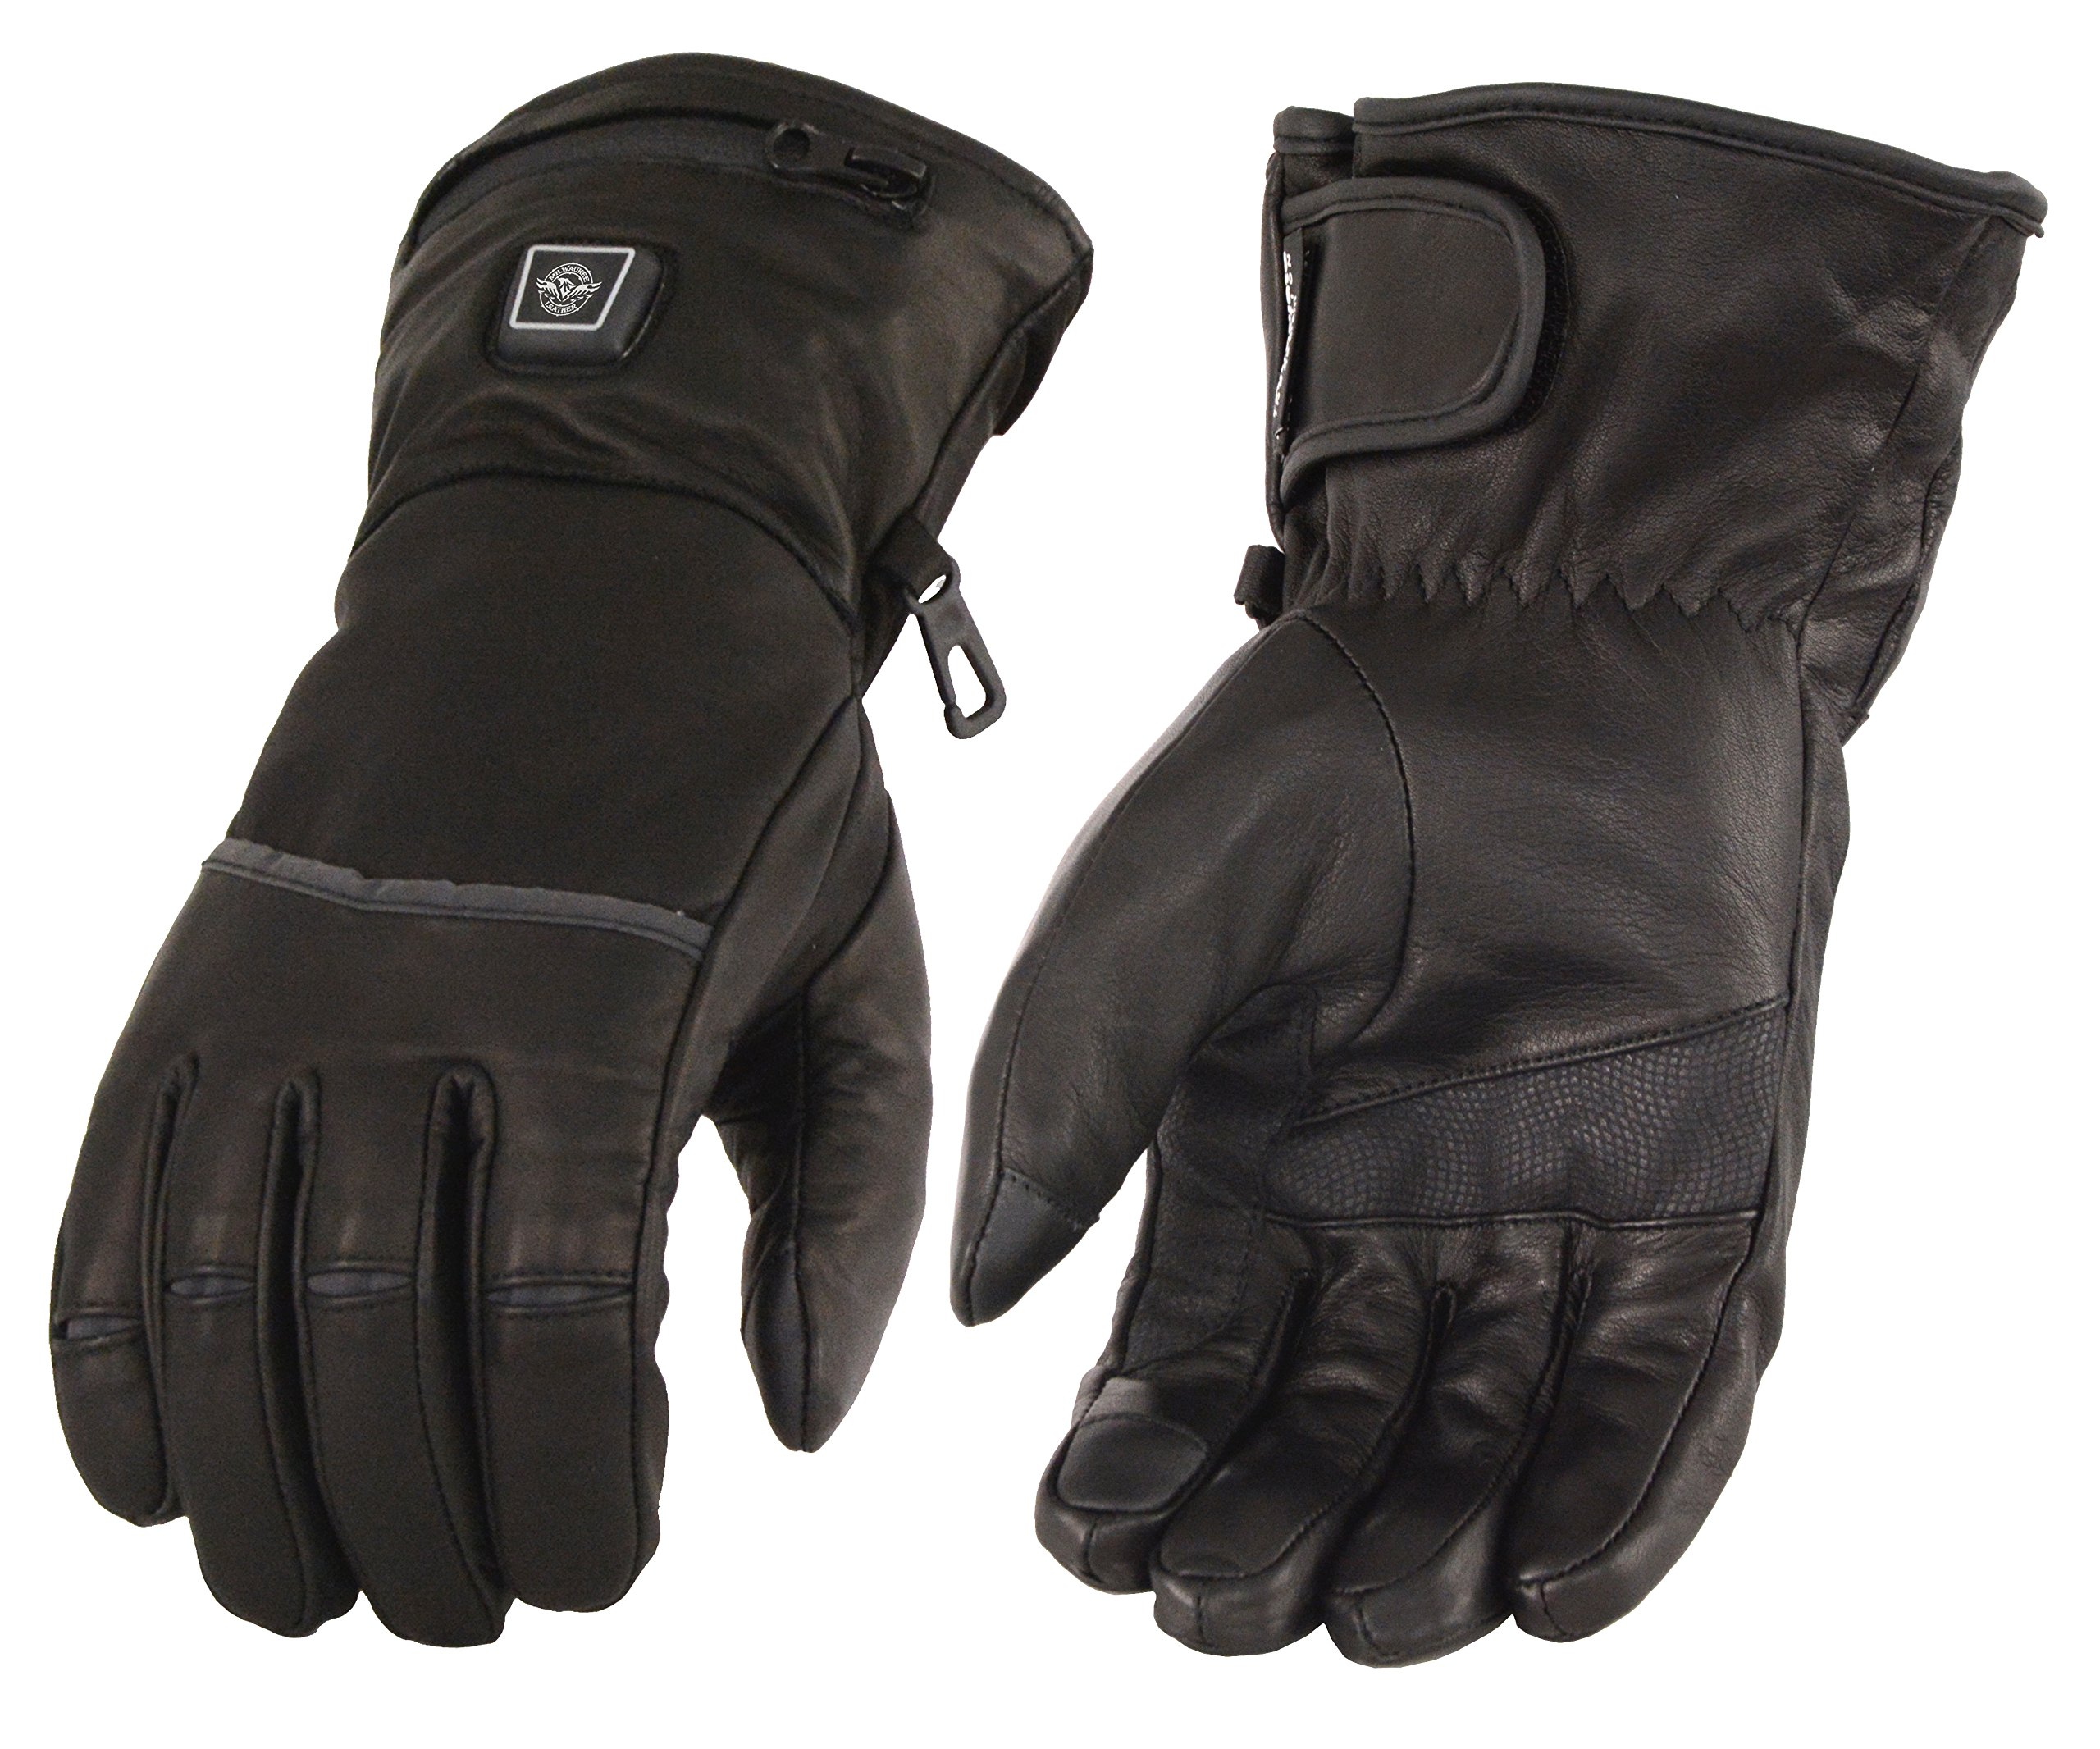 Men's Heated Leather Gauntlet Gloves w/ Touch Screen Fingers (Medium)